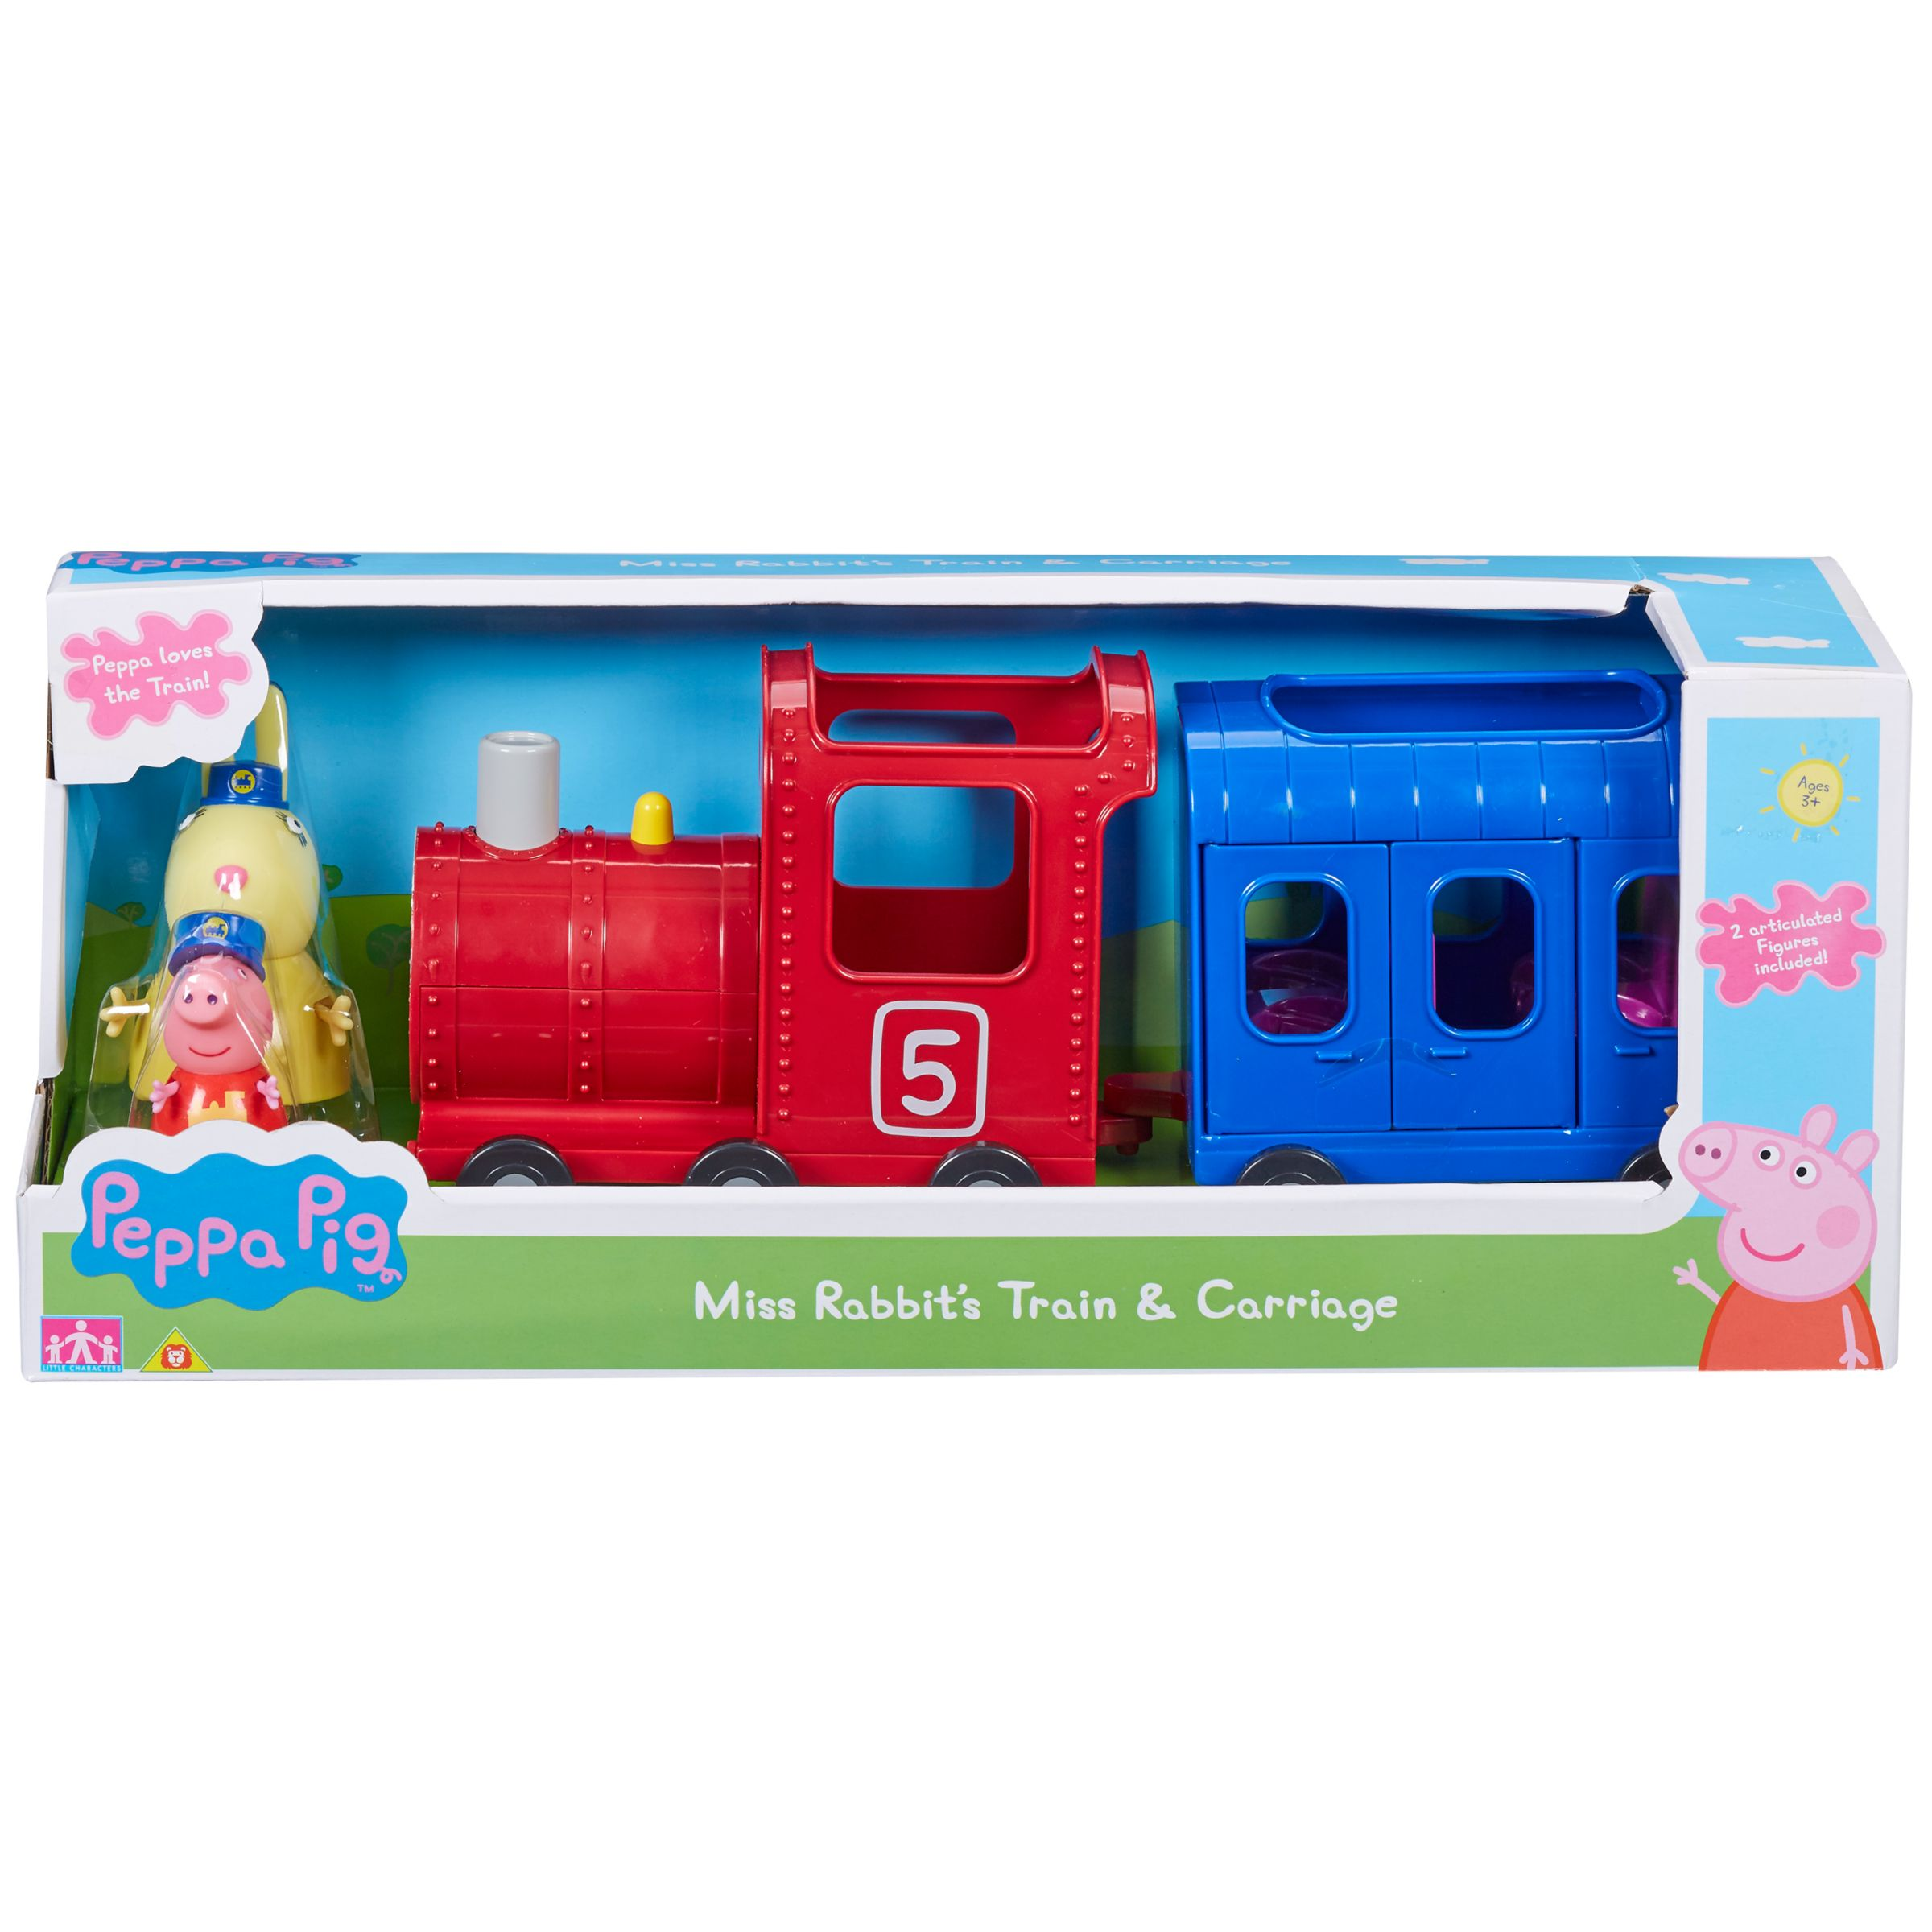 Peppa Pig Peppa Pig Miss Rabbit Train and Carriage